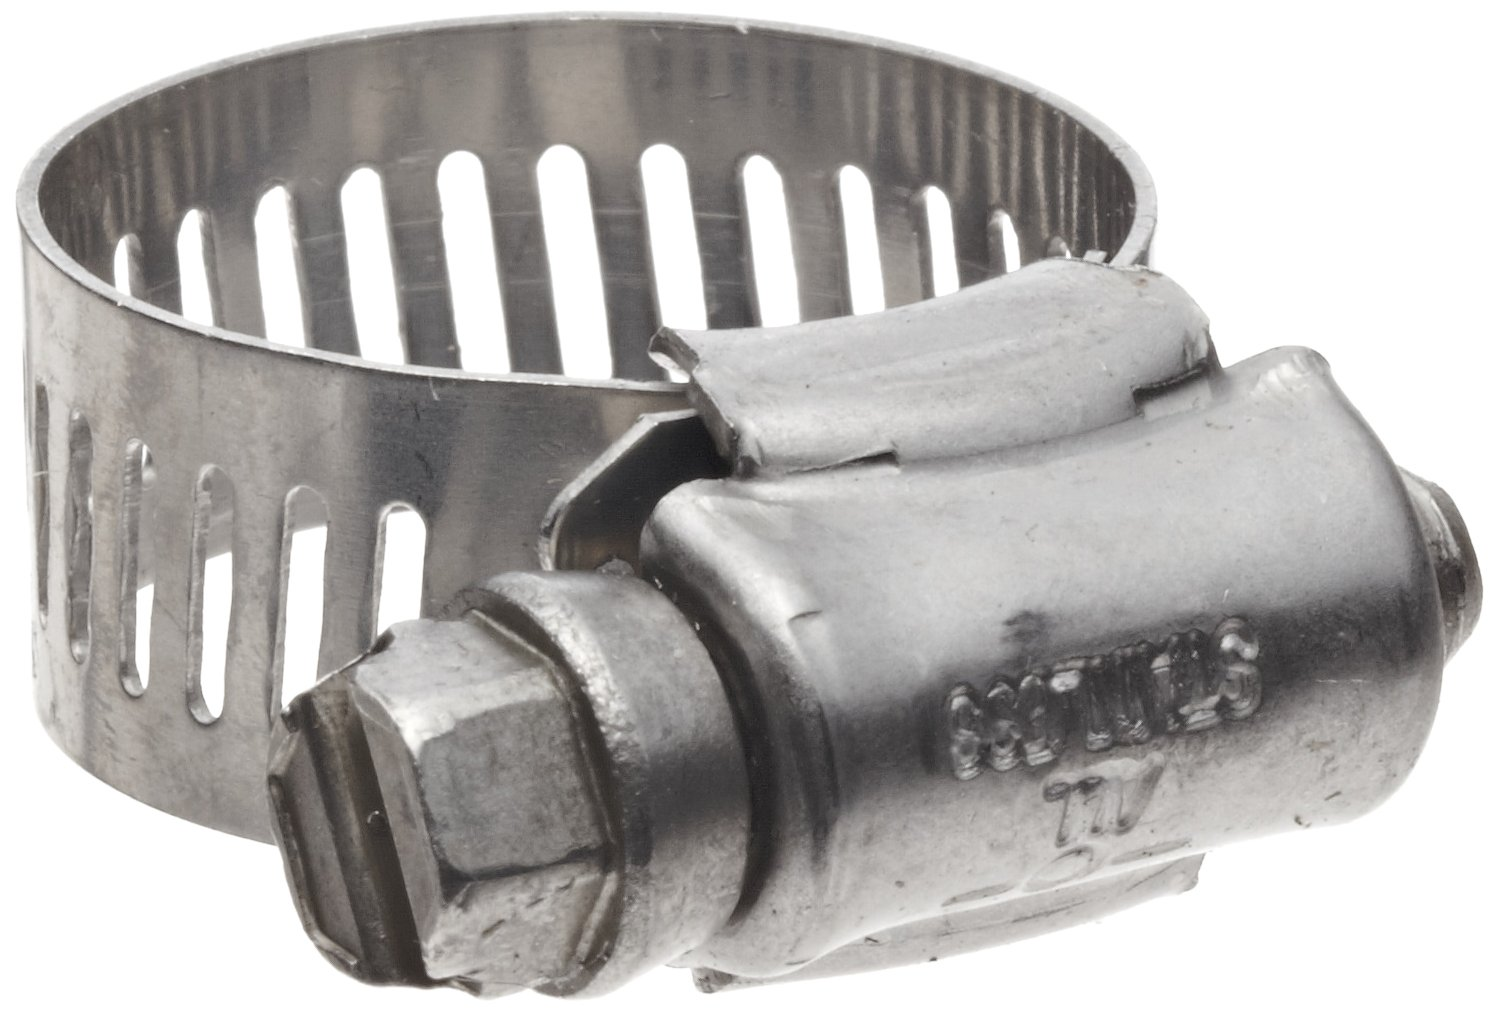 Precision Brand B8HS All Stainless Worm Gear Hose Clamp, 7/16' - 1' (Pack of 10) 7/16 - 1 (Pack of 10) Precision Brand Products Inc. 35160